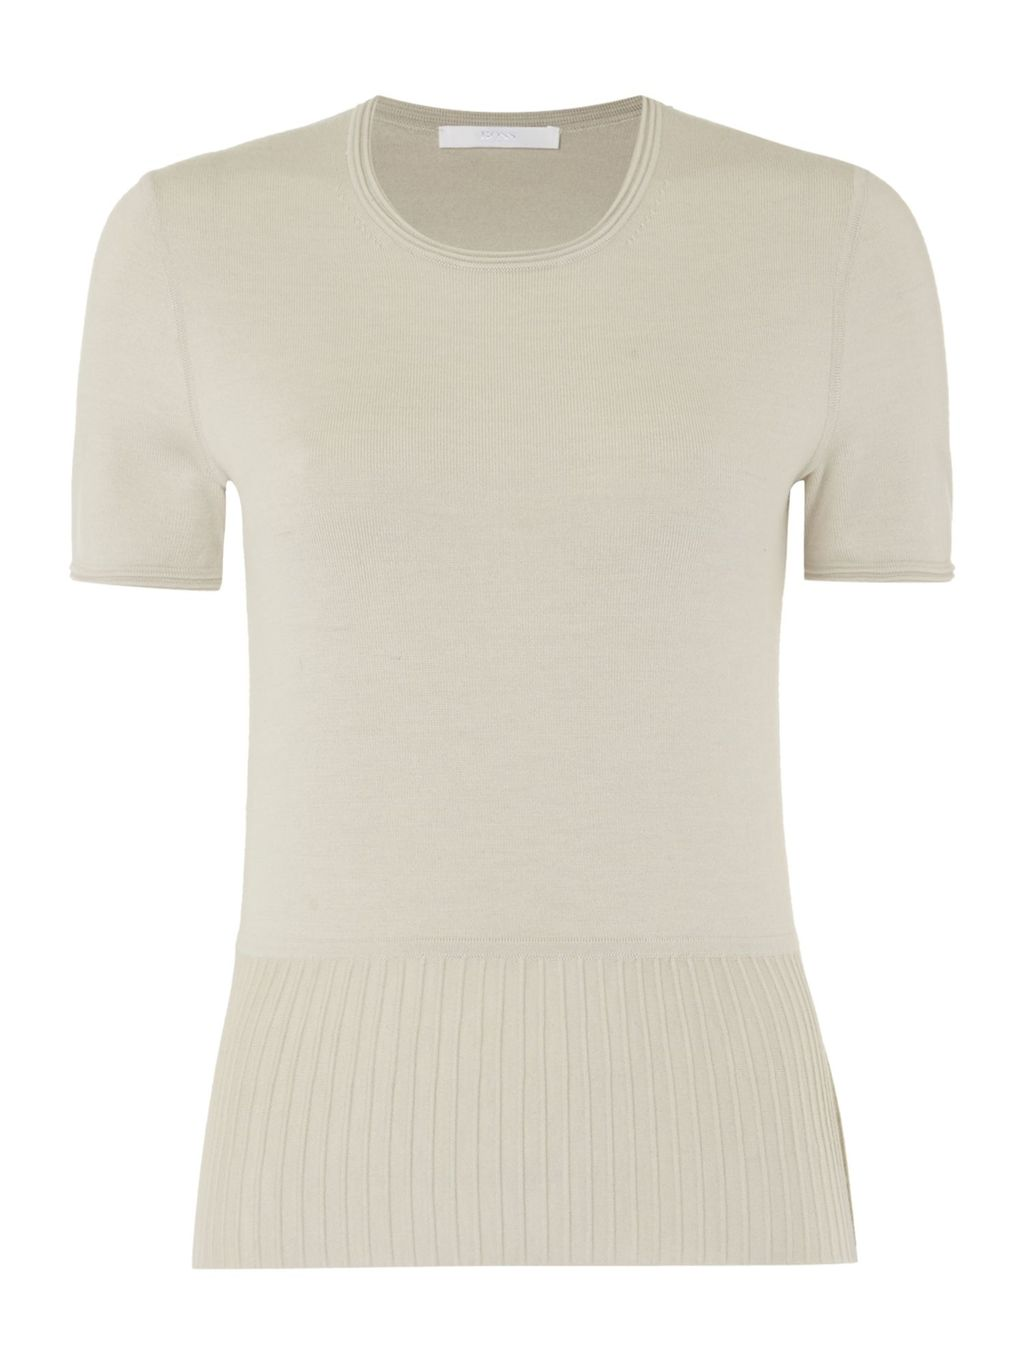 Faly Wool Mix Short Sleeve Peplum Top, Beige - pattern: plain; style: t-shirt; predominant colour: ivory/cream; occasions: casual; length: standard; fibres: wool - mix; fit: body skimming; neckline: crew; sleeve length: short sleeve; sleeve style: standard; texture group: knits/crochet; pattern type: knitted - fine stitch; season: s/s 2016; wardrobe: basic